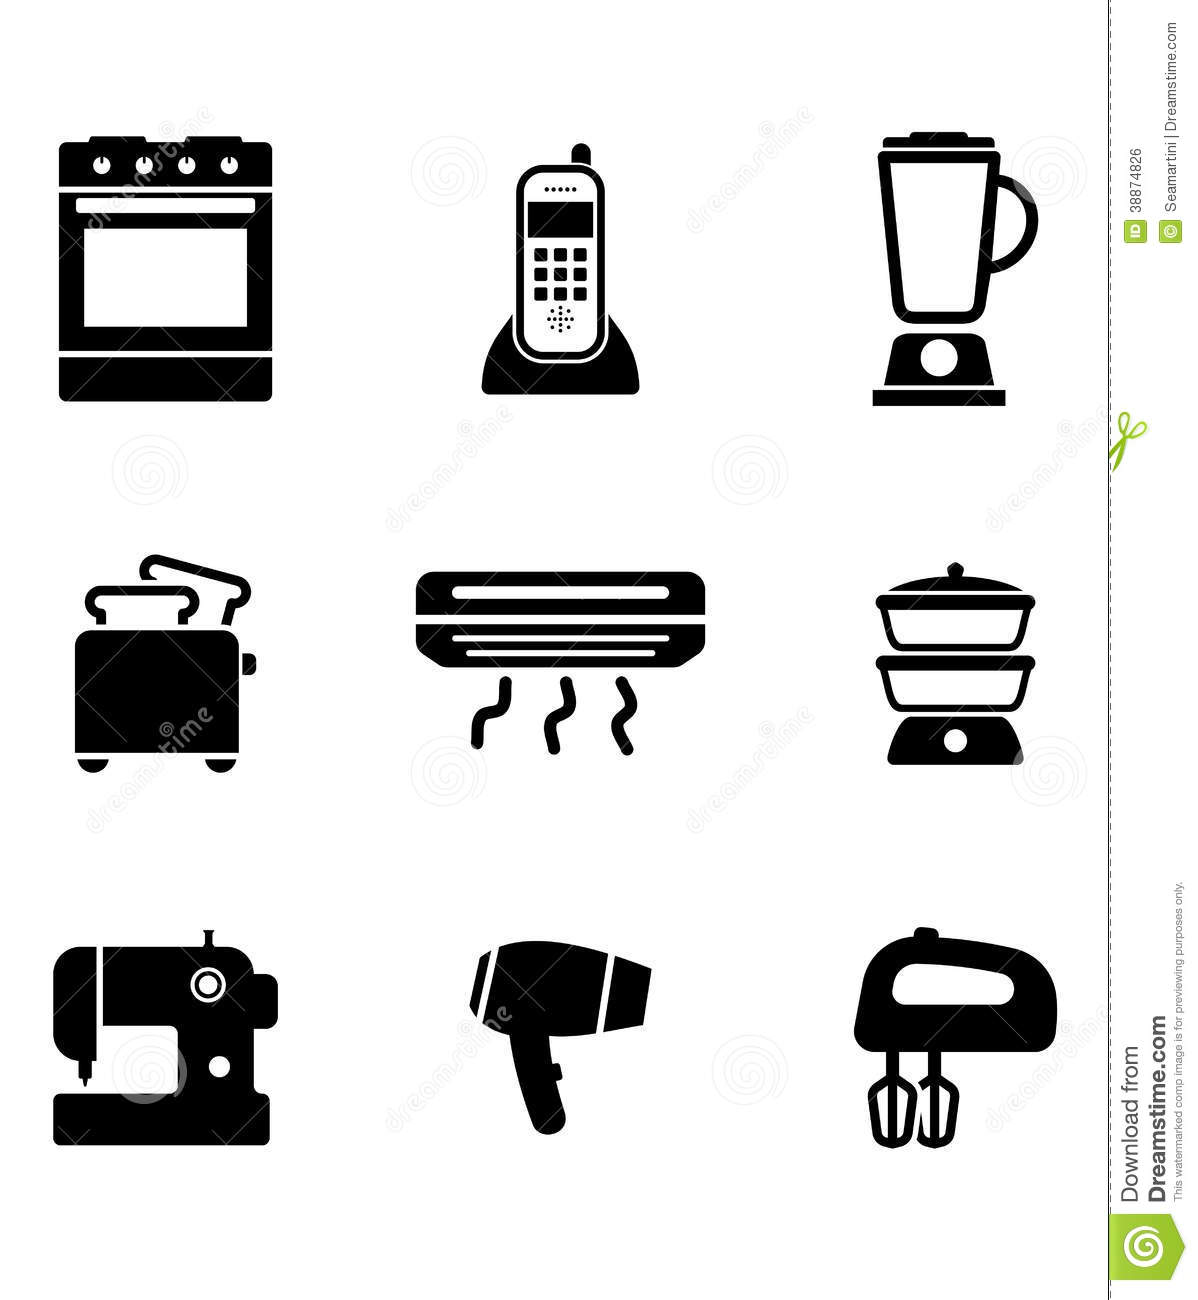 Electrical Blueprint Symbols besides Staircase Requirements together with Air Dryer AIR DRYER Air Dryer  EA B8 B0 EC B4 88 EB 82 B4 EC 9A A9  EC A0 95 EB A6 AC moreover Royalty Free Stock Image Home Appliance Icons Set Oven Telephone Liquidizer Toaster Heater Steamer Sewing Machine Hairdryer Egg Beater Black Image38874826 additionally Alfa Romeo Mito 2008 2013 Fuse Box Diagram. on heater